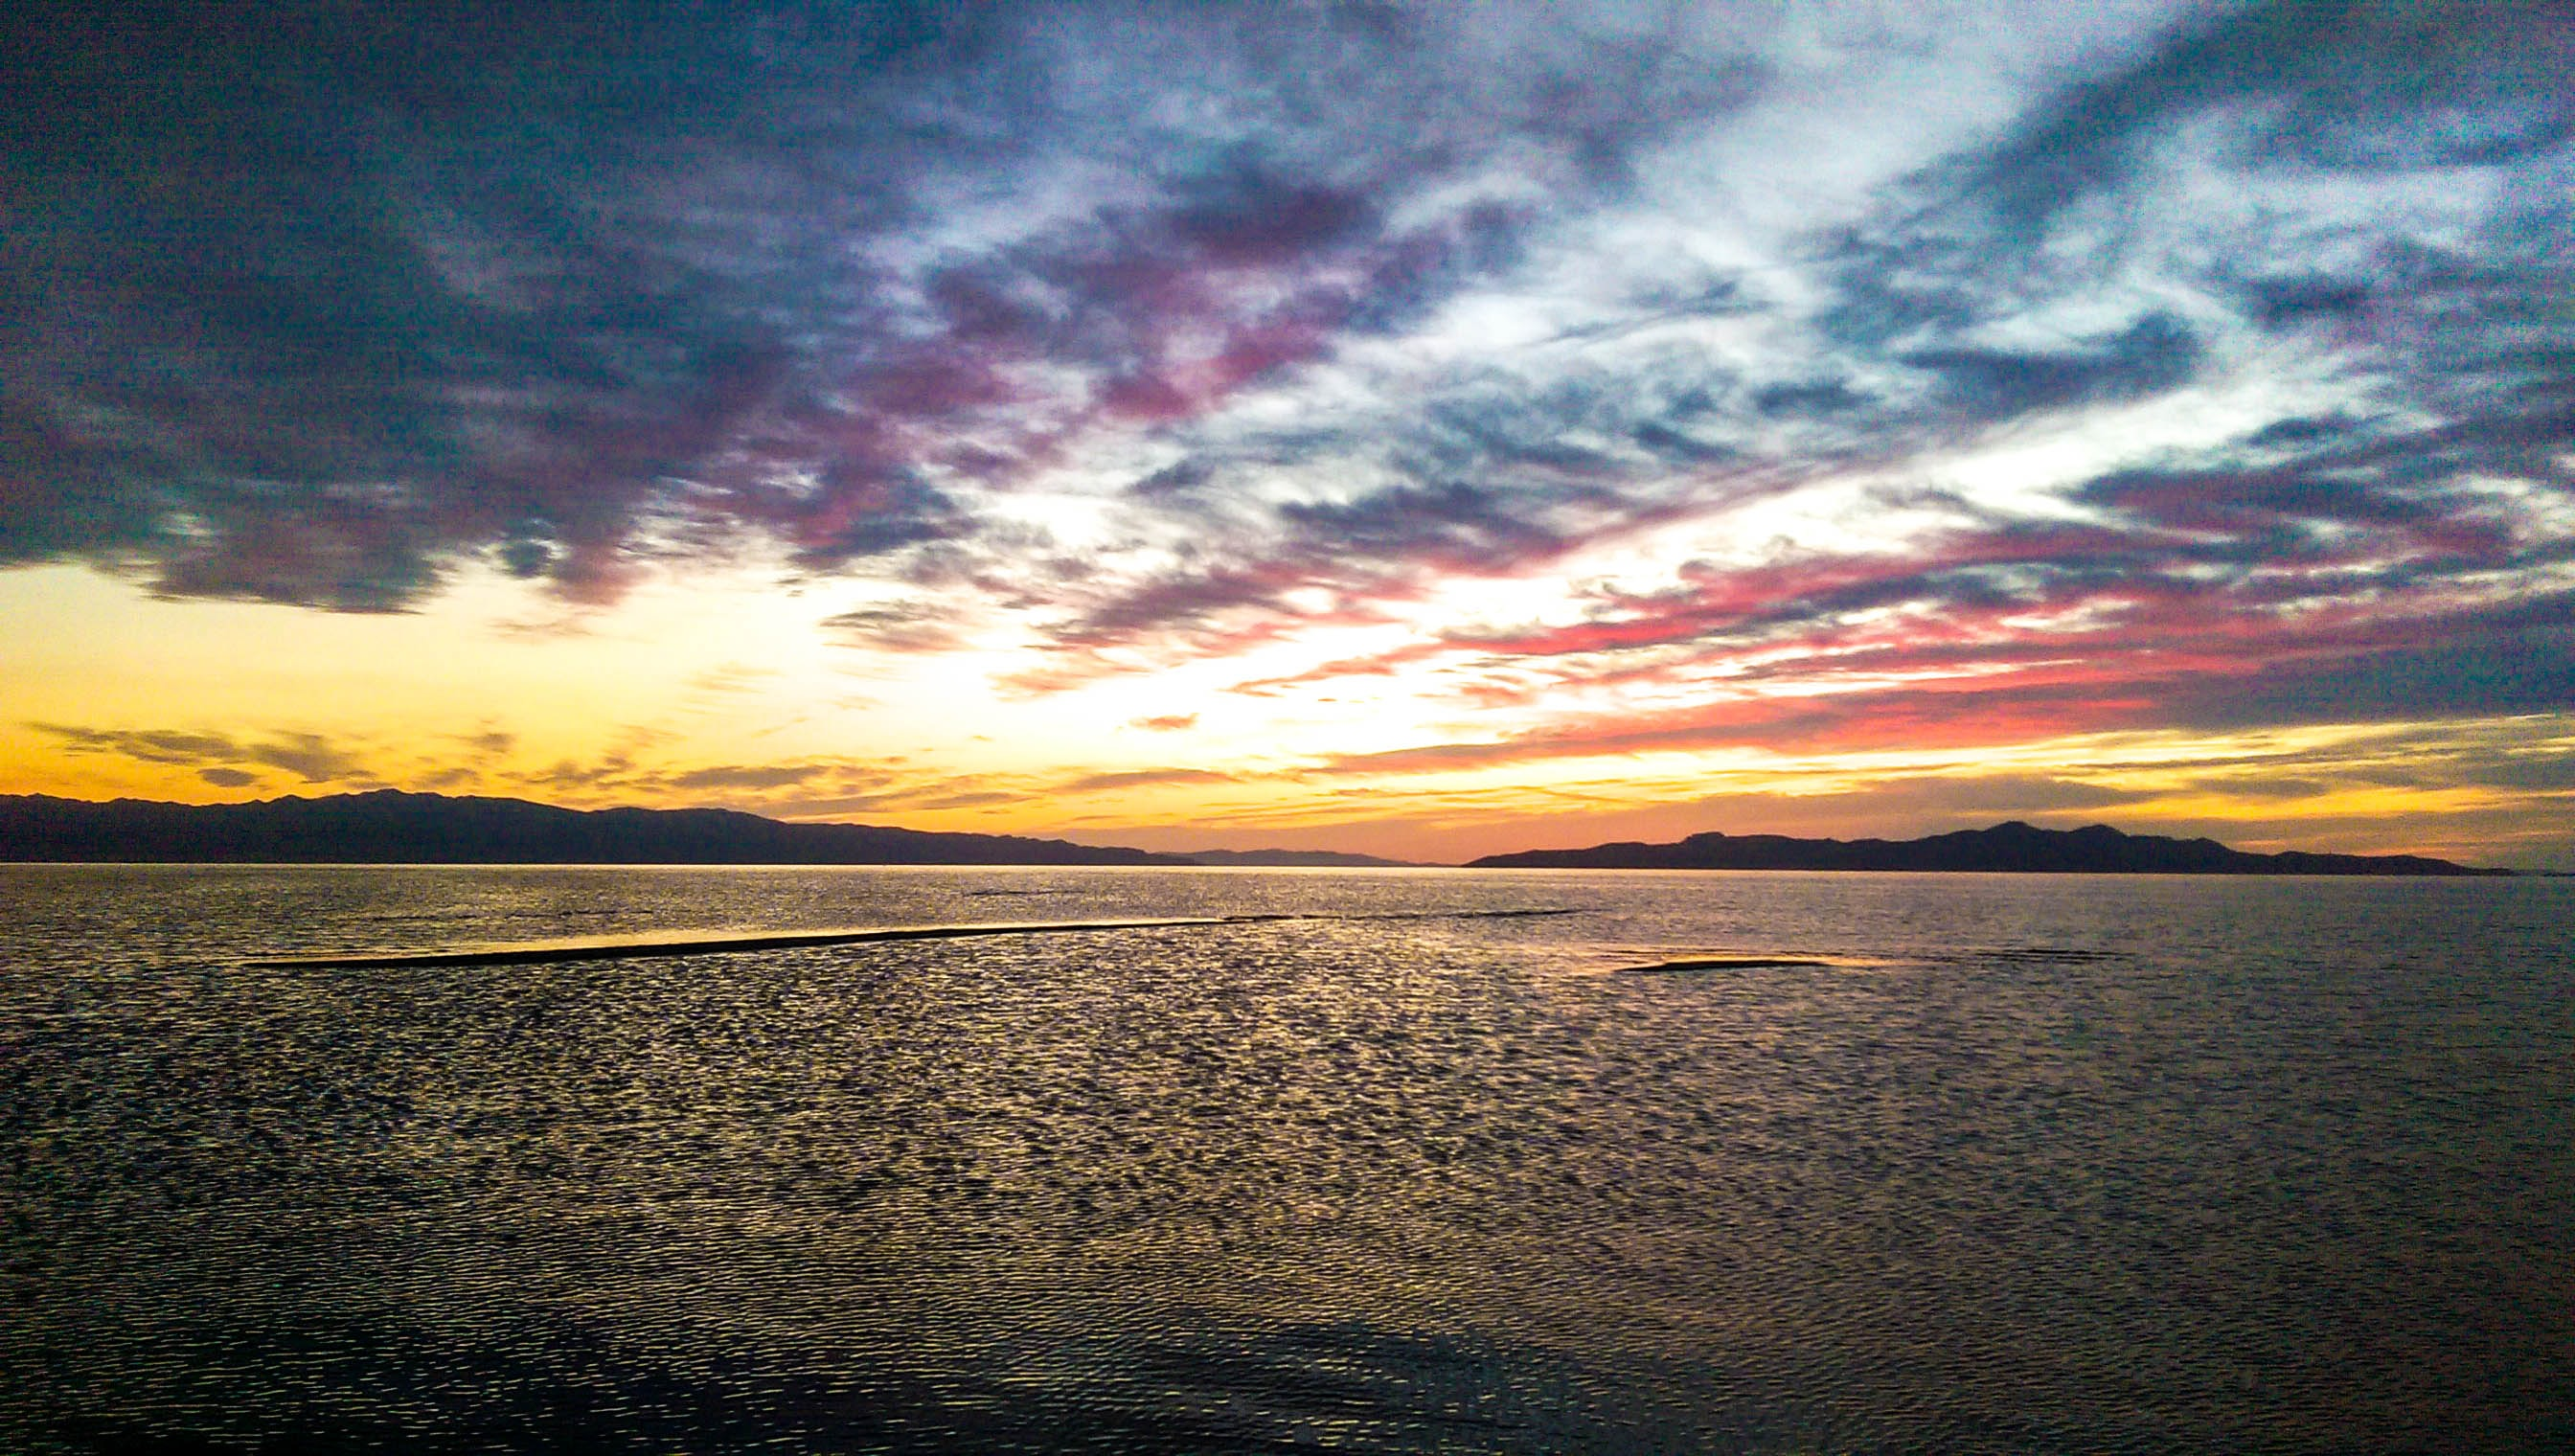 panoramic photography of body of water under golden hour